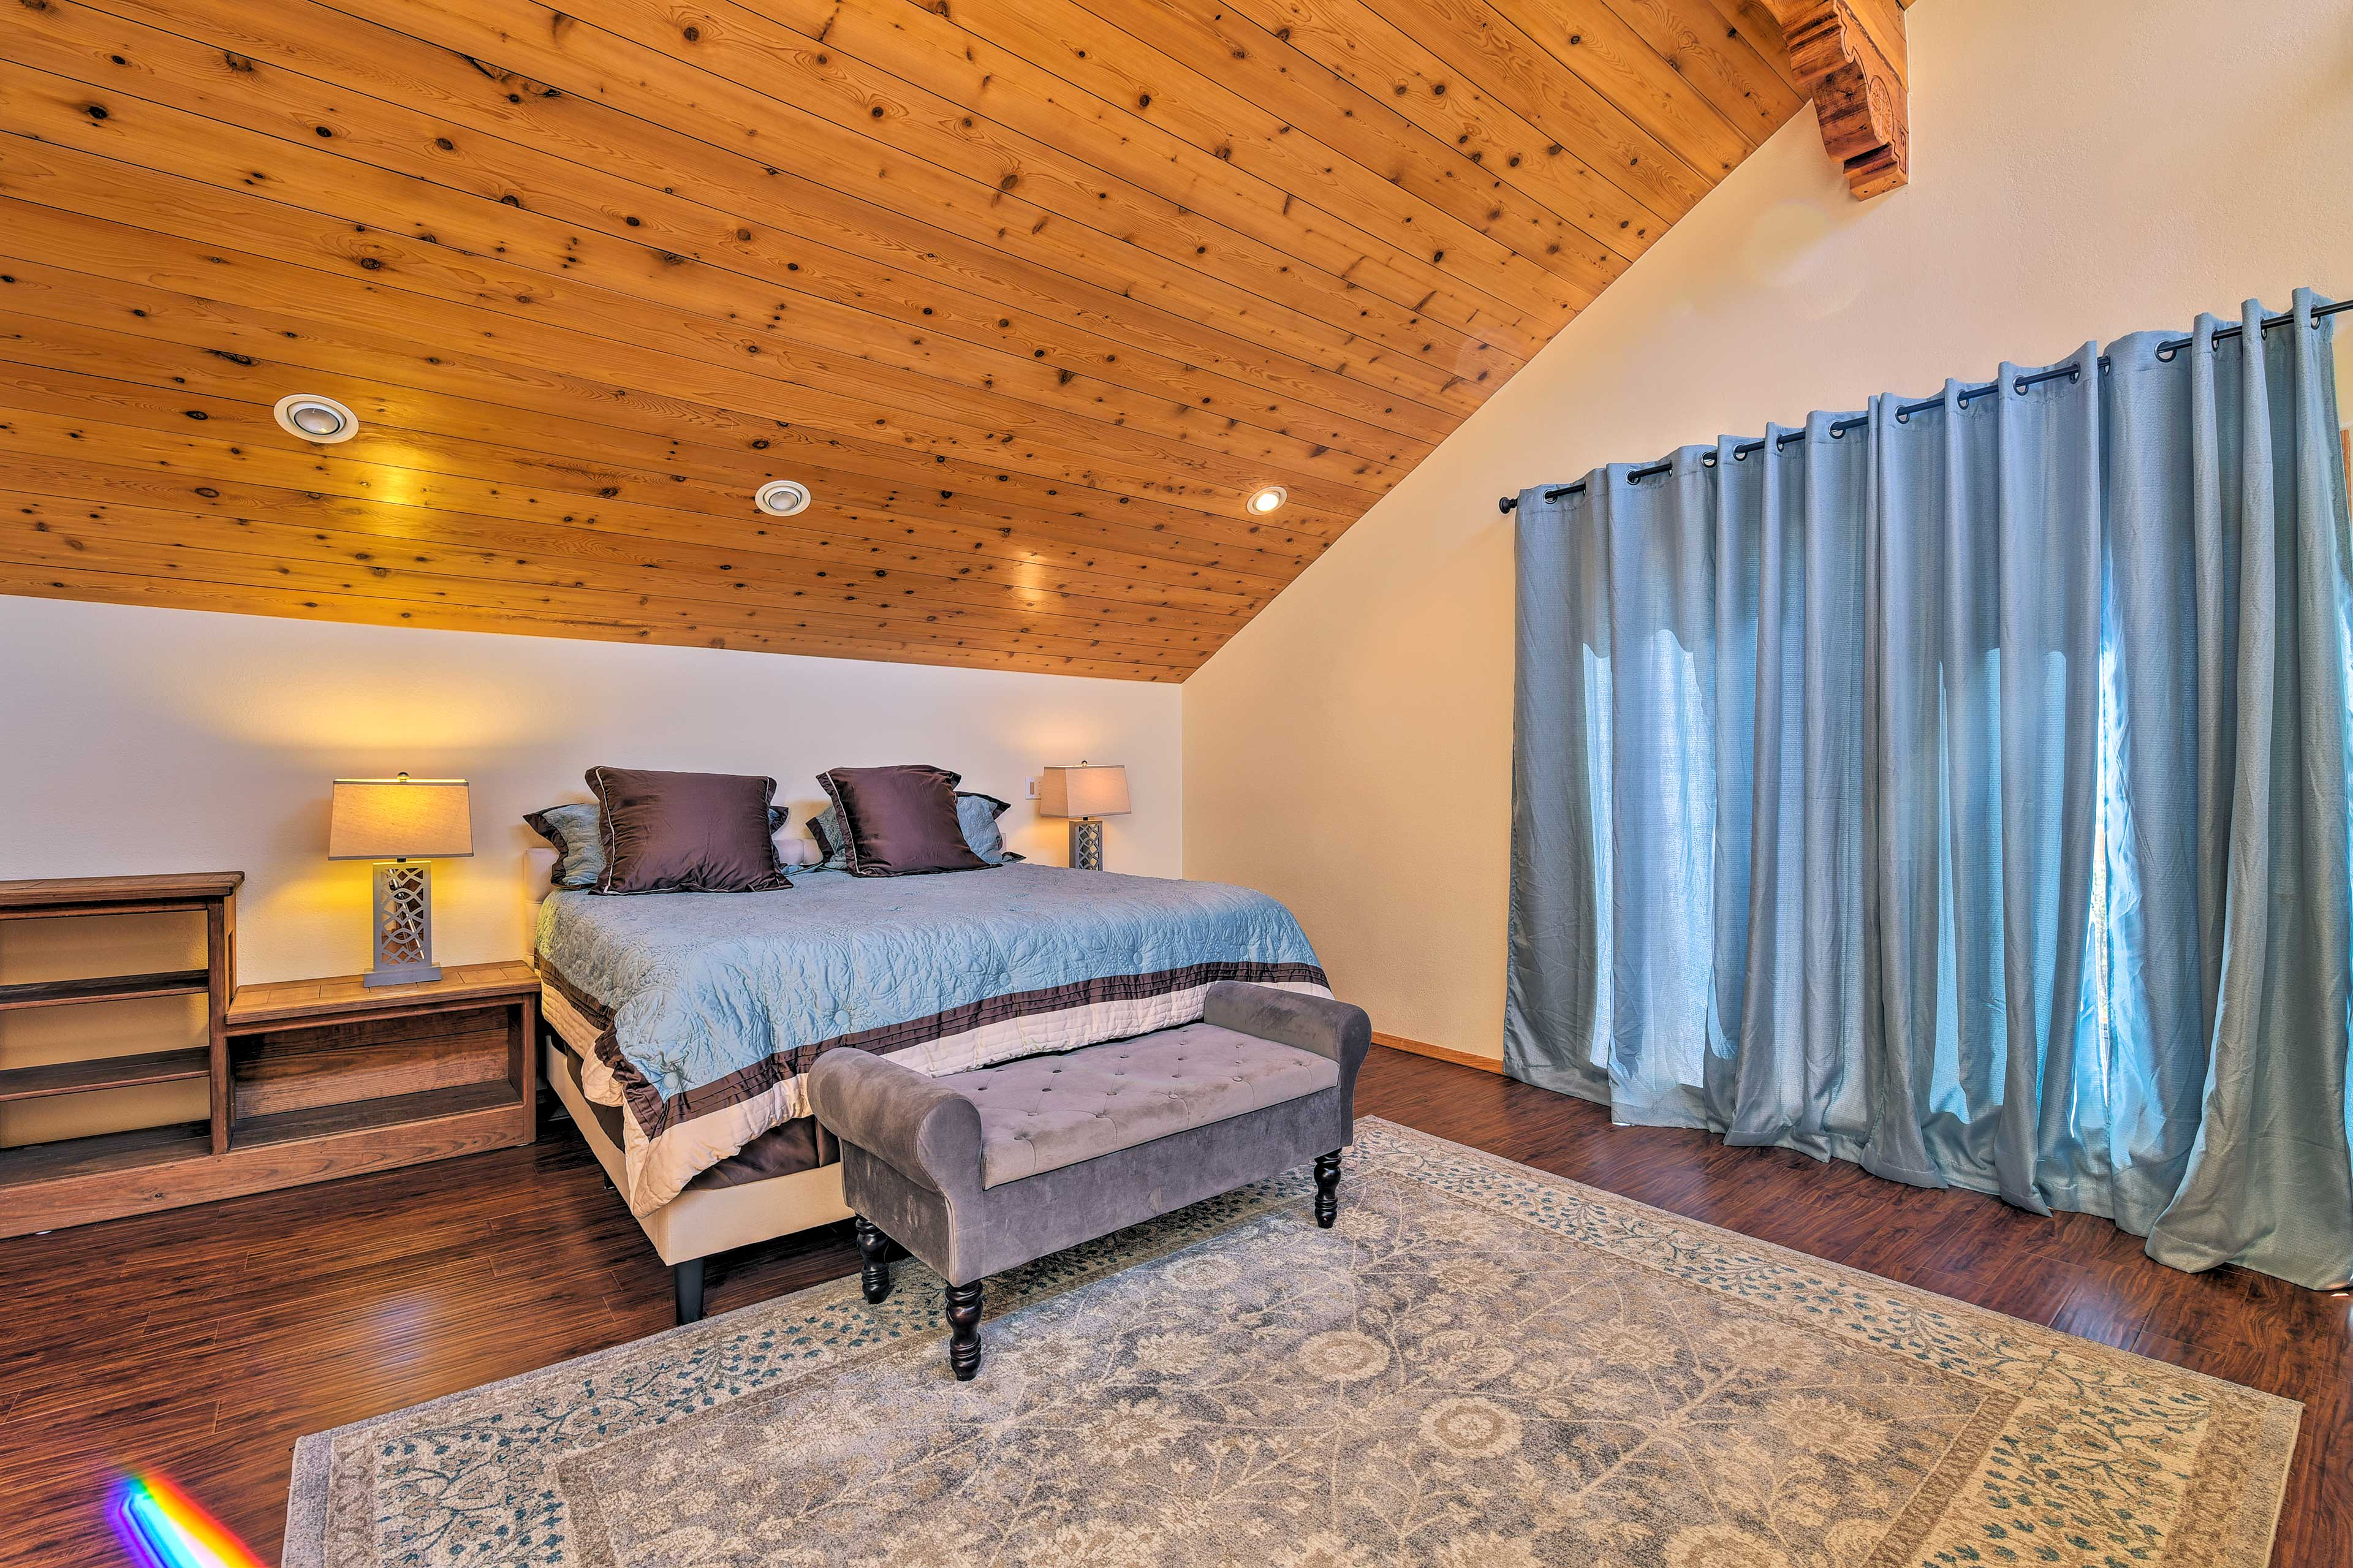 Close the curtains to catch a few more minutes of sleep in your plush king bed.